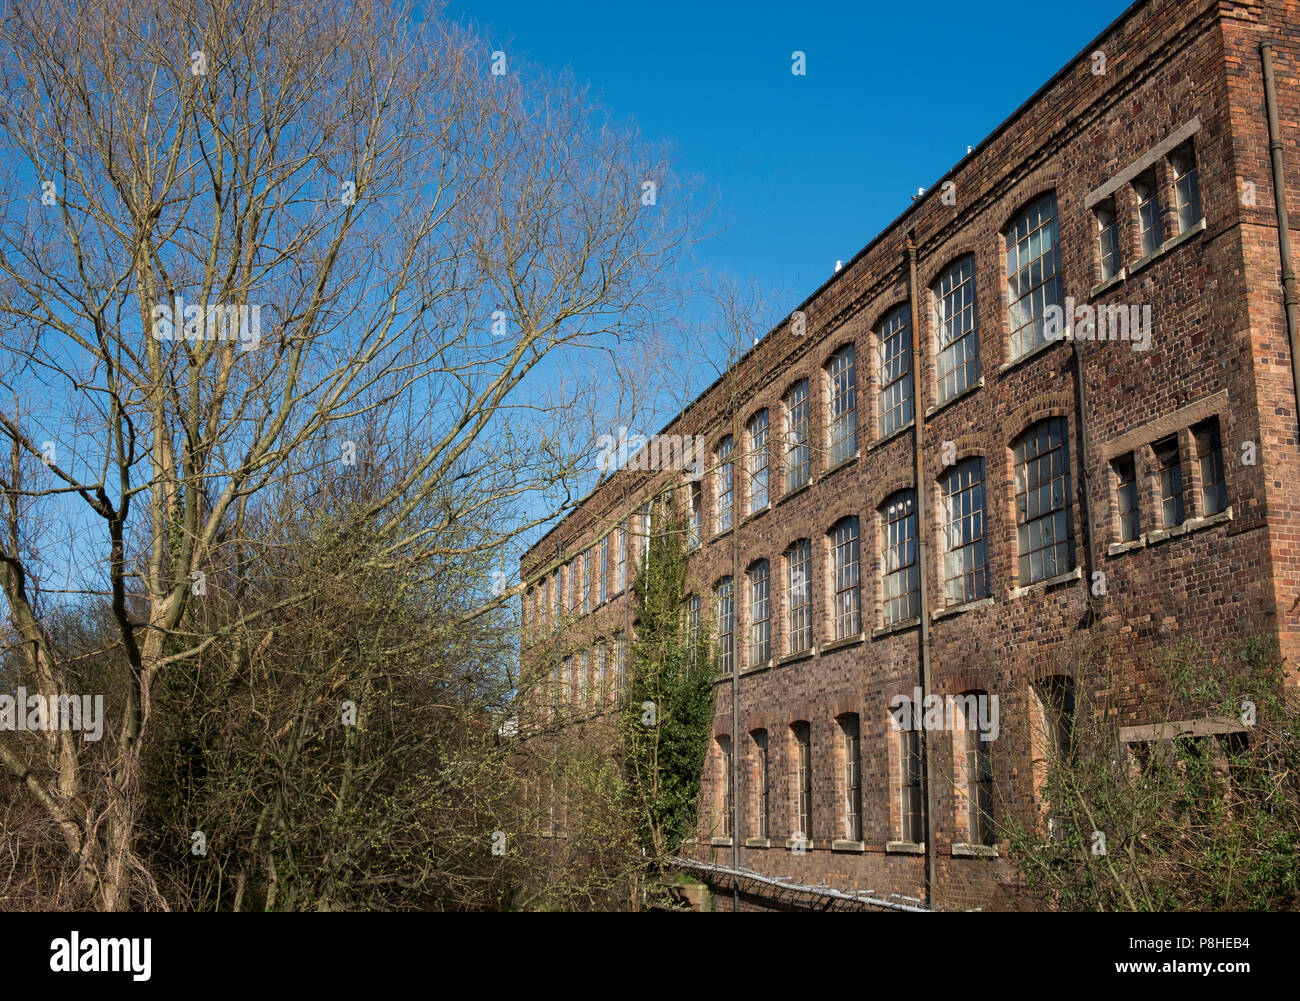 Old factory and warehouses, Kidderminster, Worcestershire, England, Europe